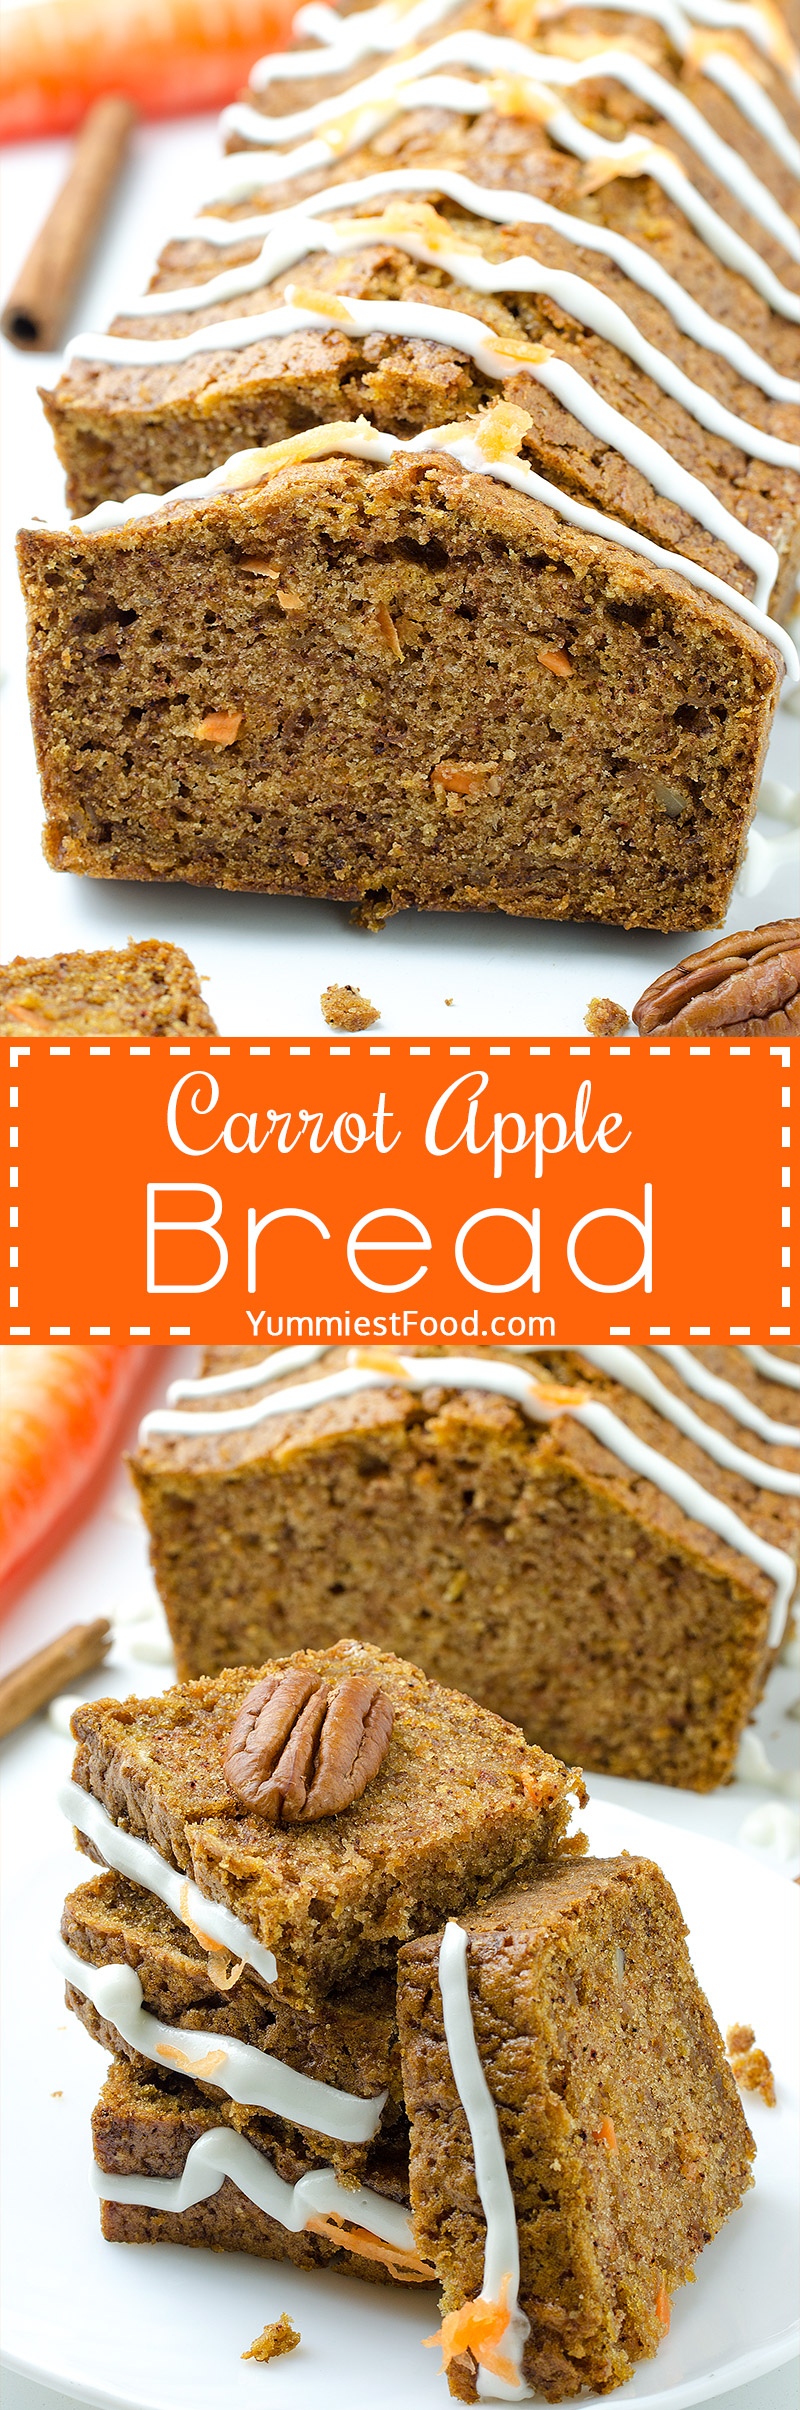 Carrot Apple Bread - yummy and very quick bread. Carrot Apple Bread is ideal choice for healthy breakfast. Super Carrot and Apple combination.